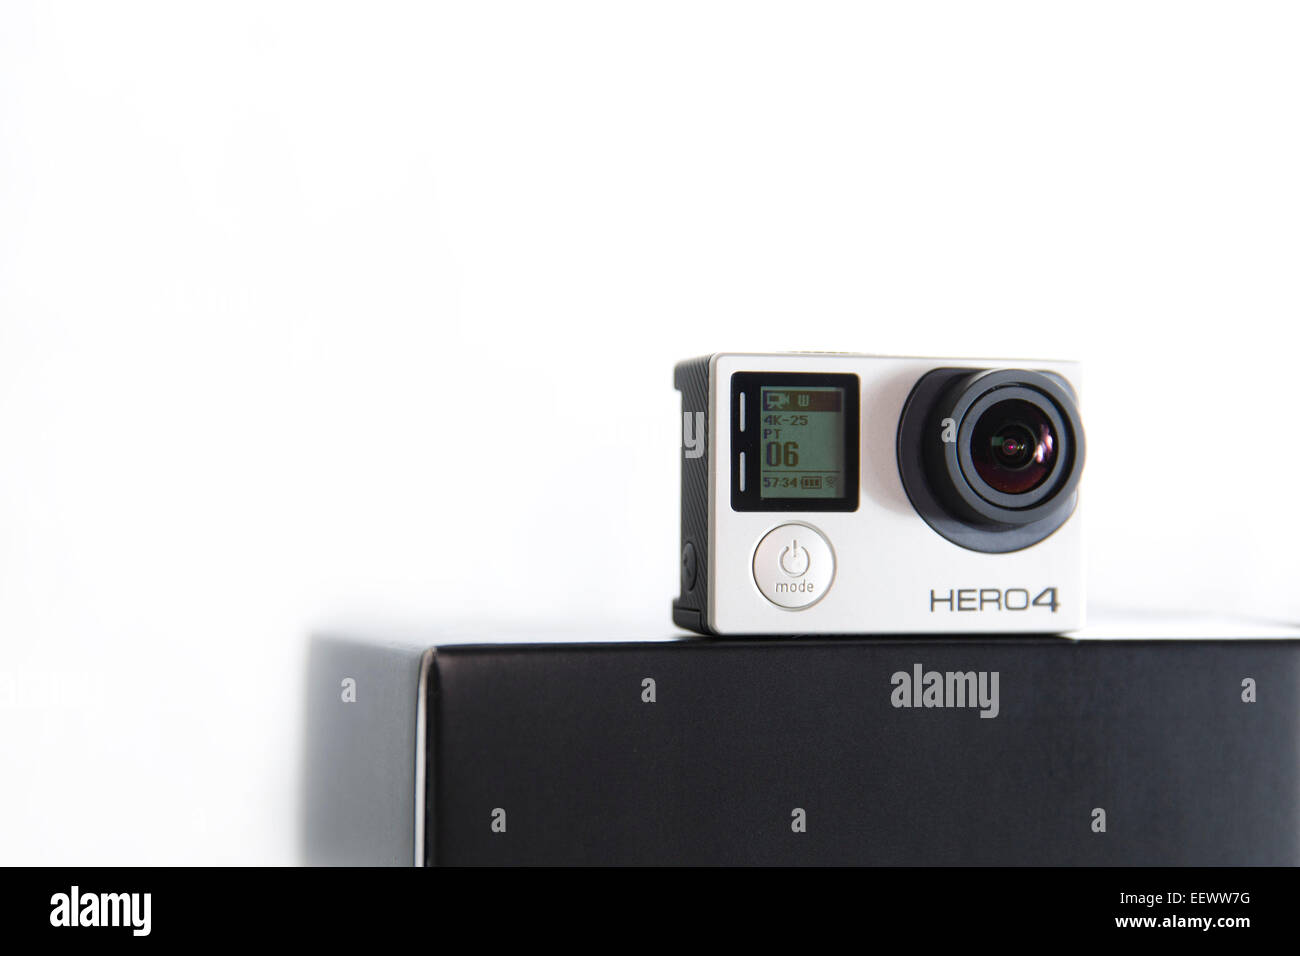 A GoPro Hero 4 Black edition is pictured in a studio on a white background. - Stock Image